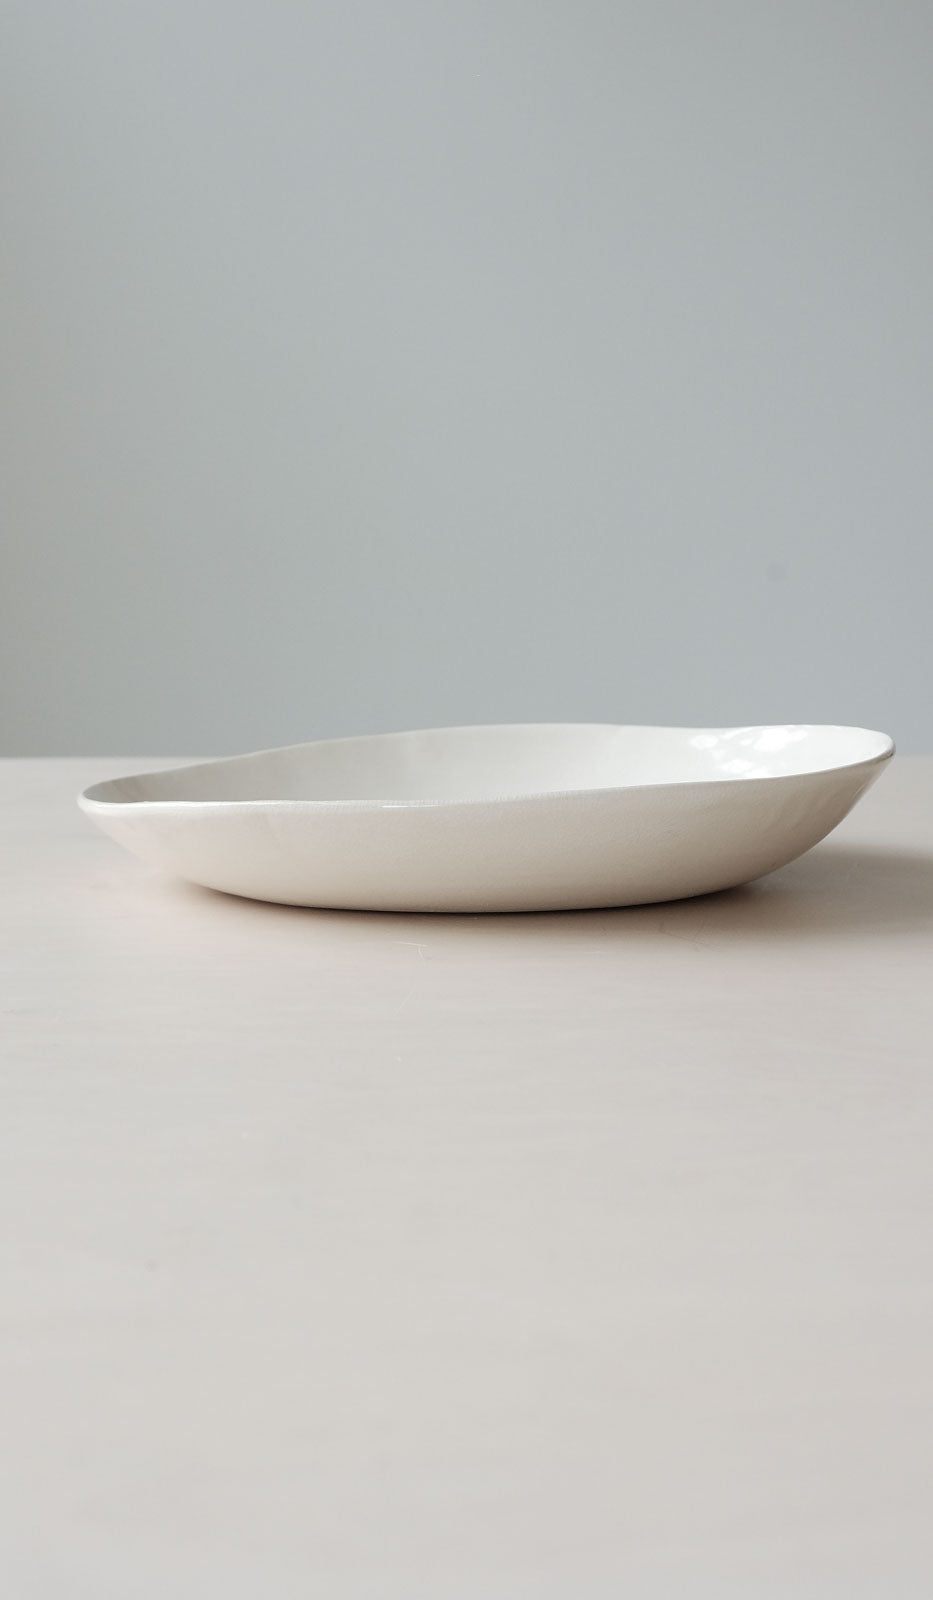 Nathalee Paolinelli Low Bowl